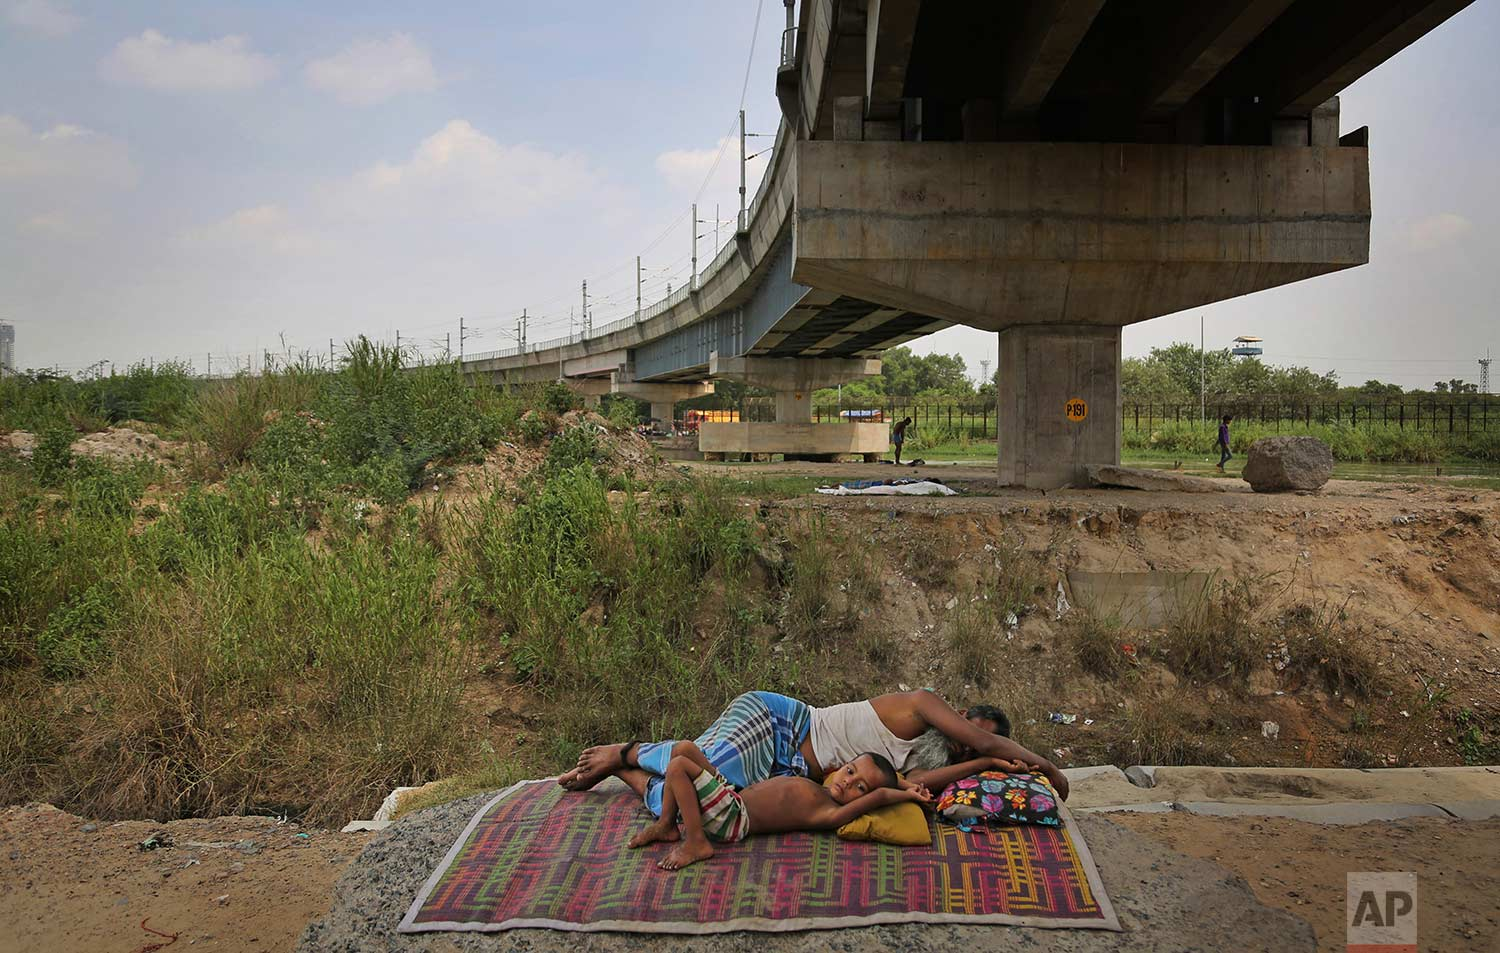 A Rohingya refugee takes a nap as a child lies next to him outside a temporary shelter in New Delhi, India, Wednesday, Aug. 16, 2017. (AP Photo/Altaf Qadri)